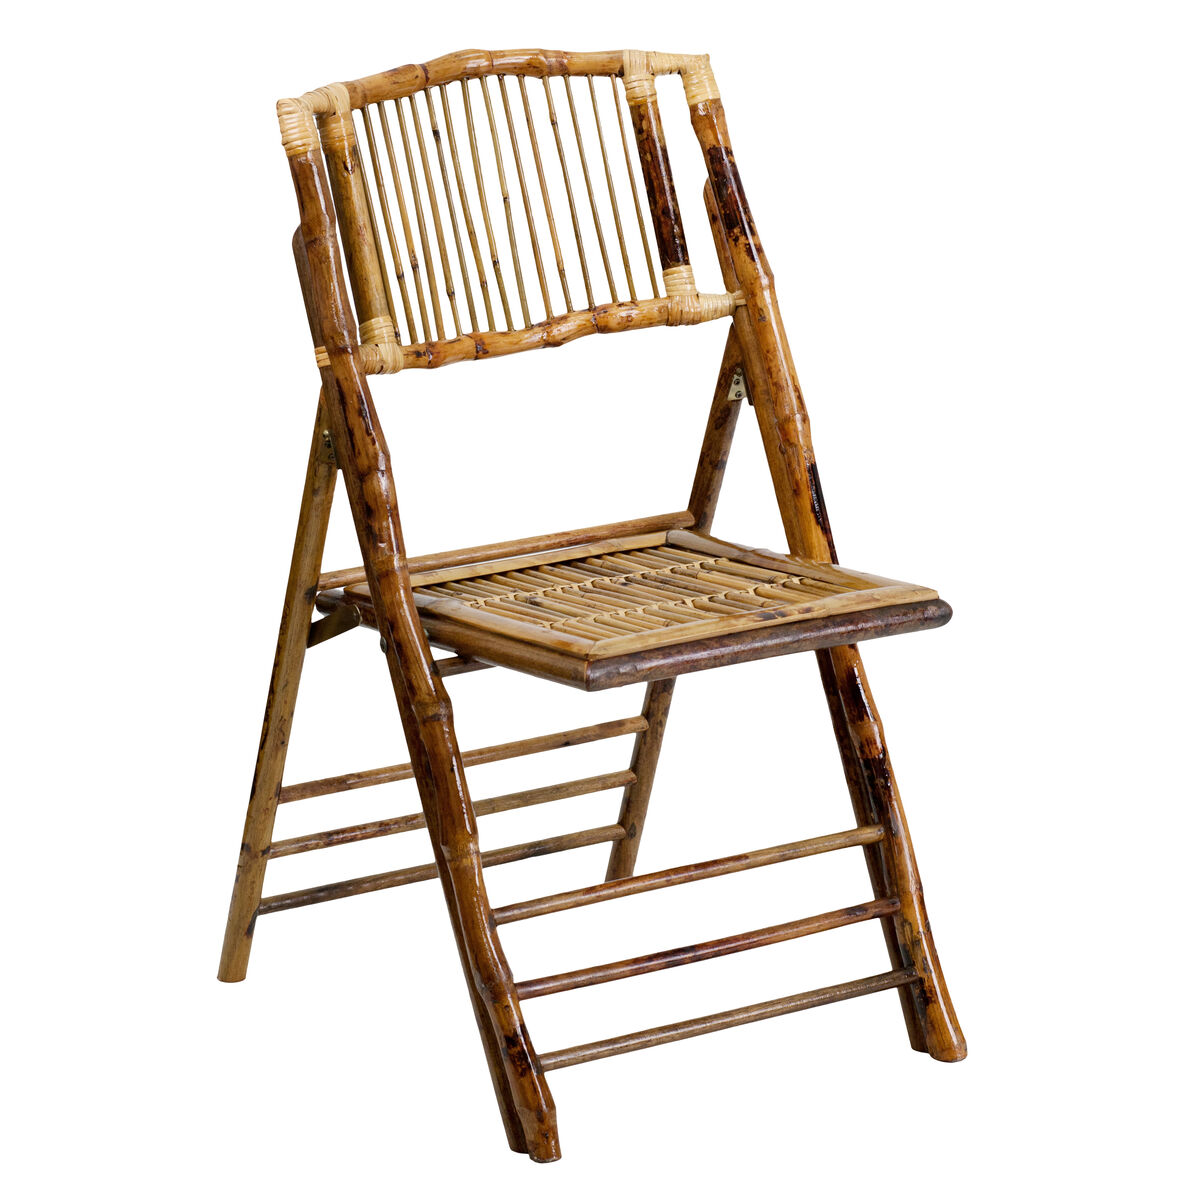 Our American Champion Bamboo Folding Chair Is On Now